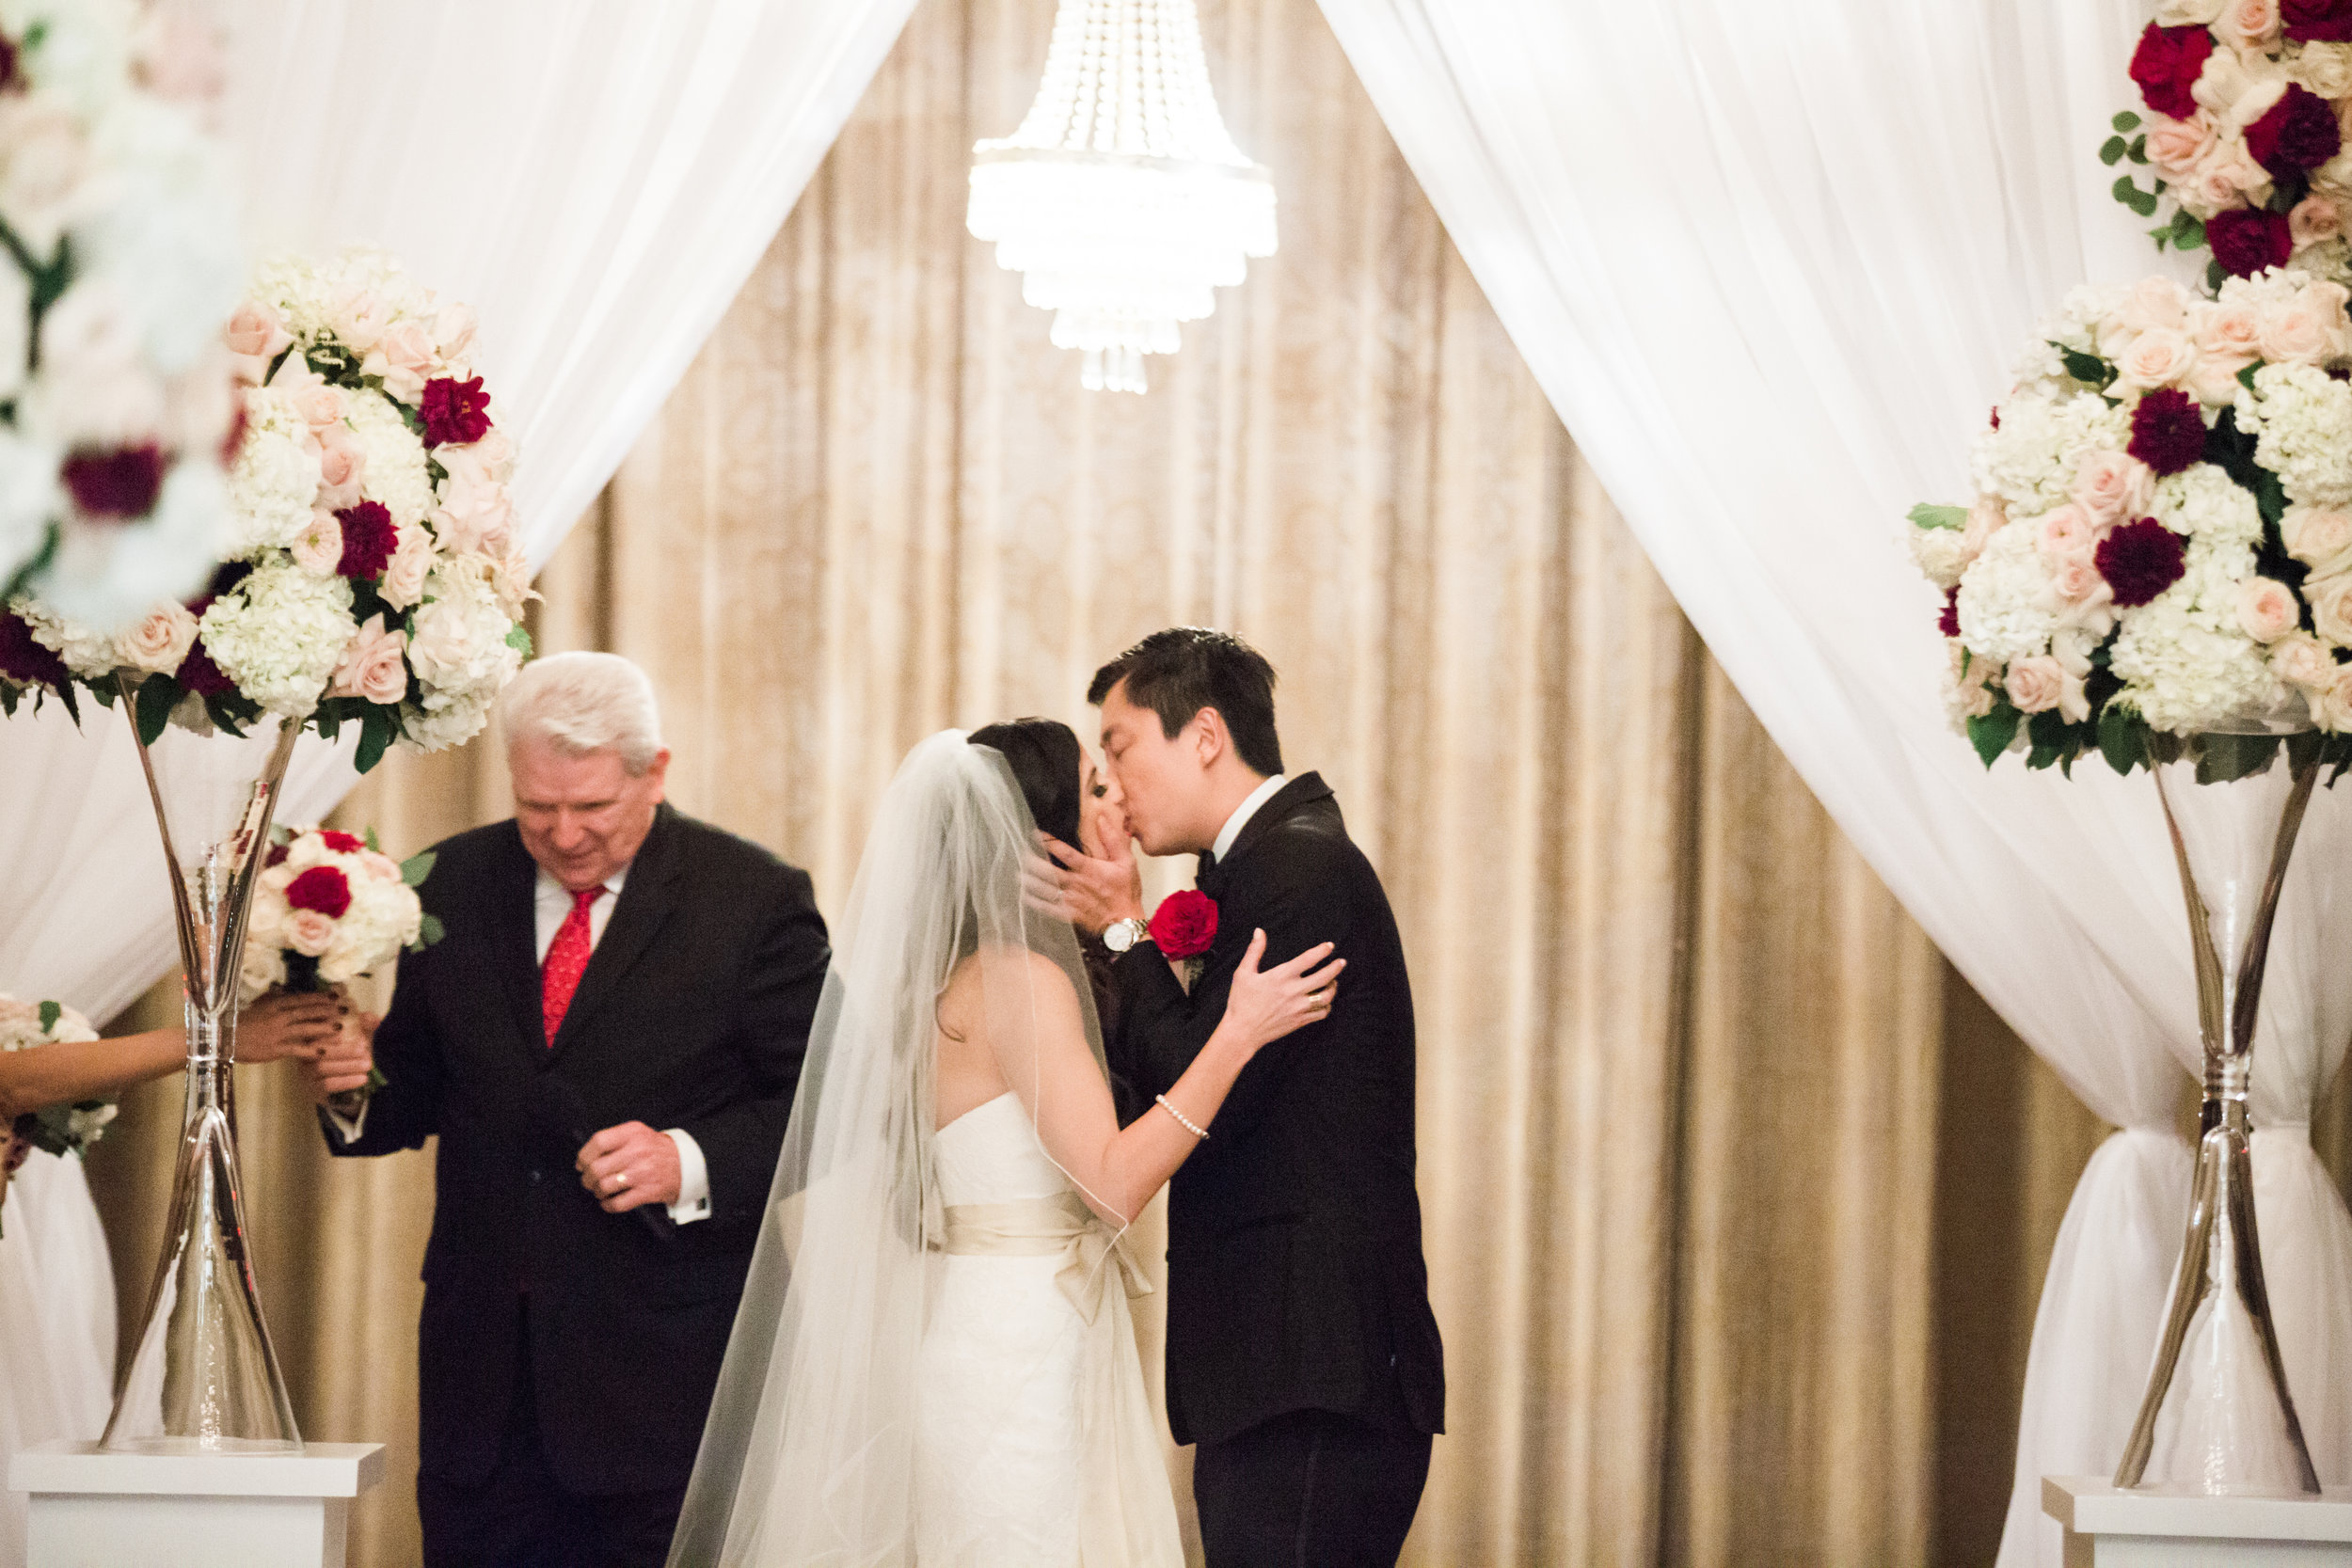 First Kiss at wedding ceremony.Luxury wedding at the Mandarin Oriental with a color scheme of white, blush, and pops of wine red produced by Las Vegas Wedding Planner Andrea Eppolito with photos by Stephen Salazar Photography.